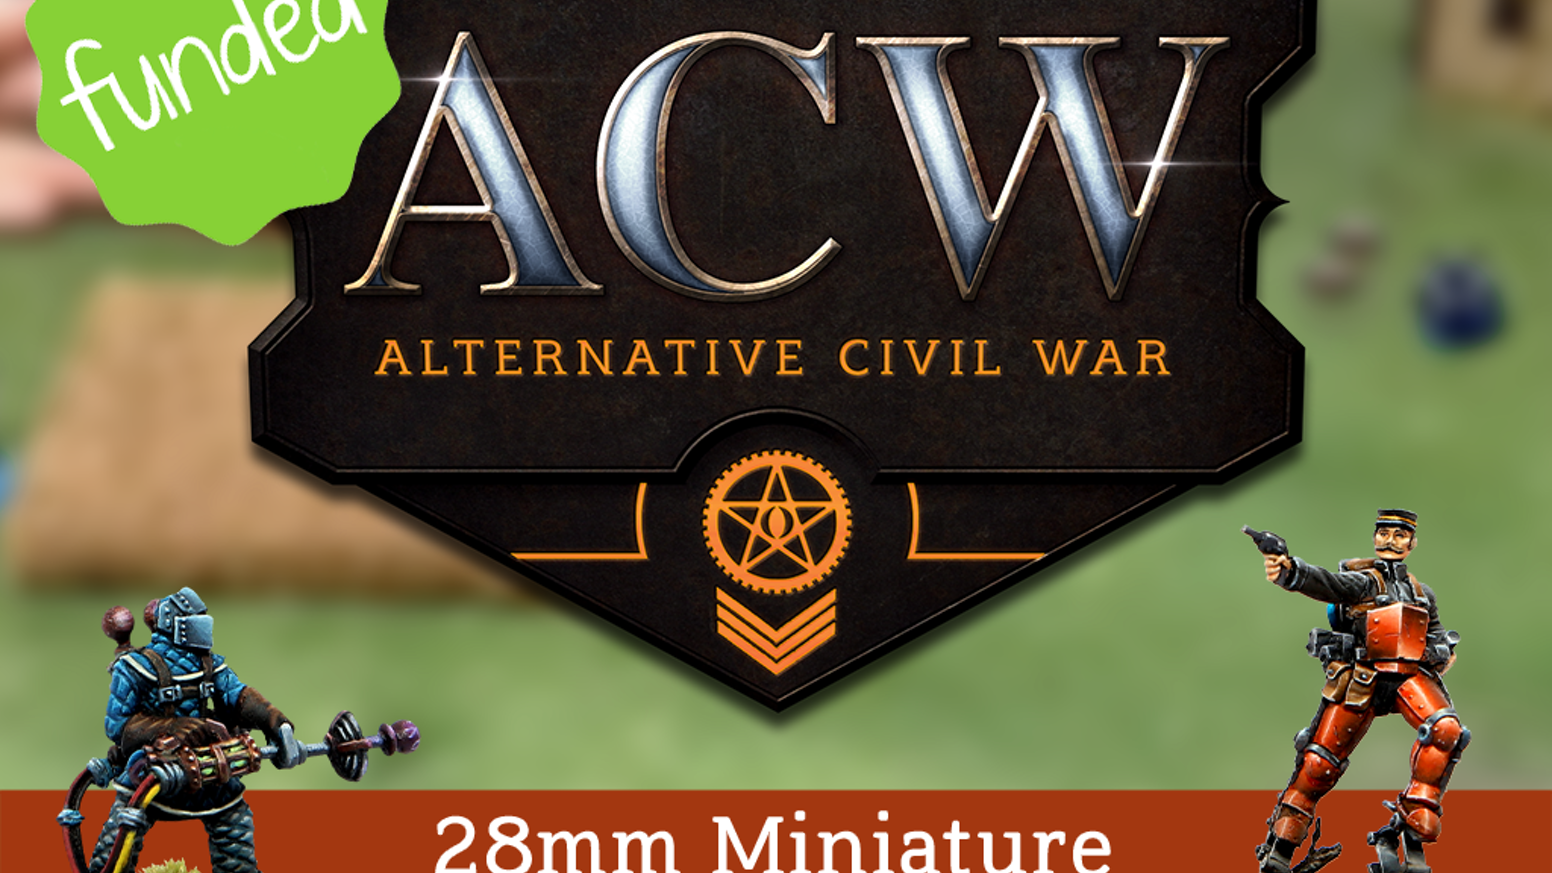 ACW is a 28mm miniature wargame where impossible science clashes with ancient powers over the battlefields of the American Civil War.